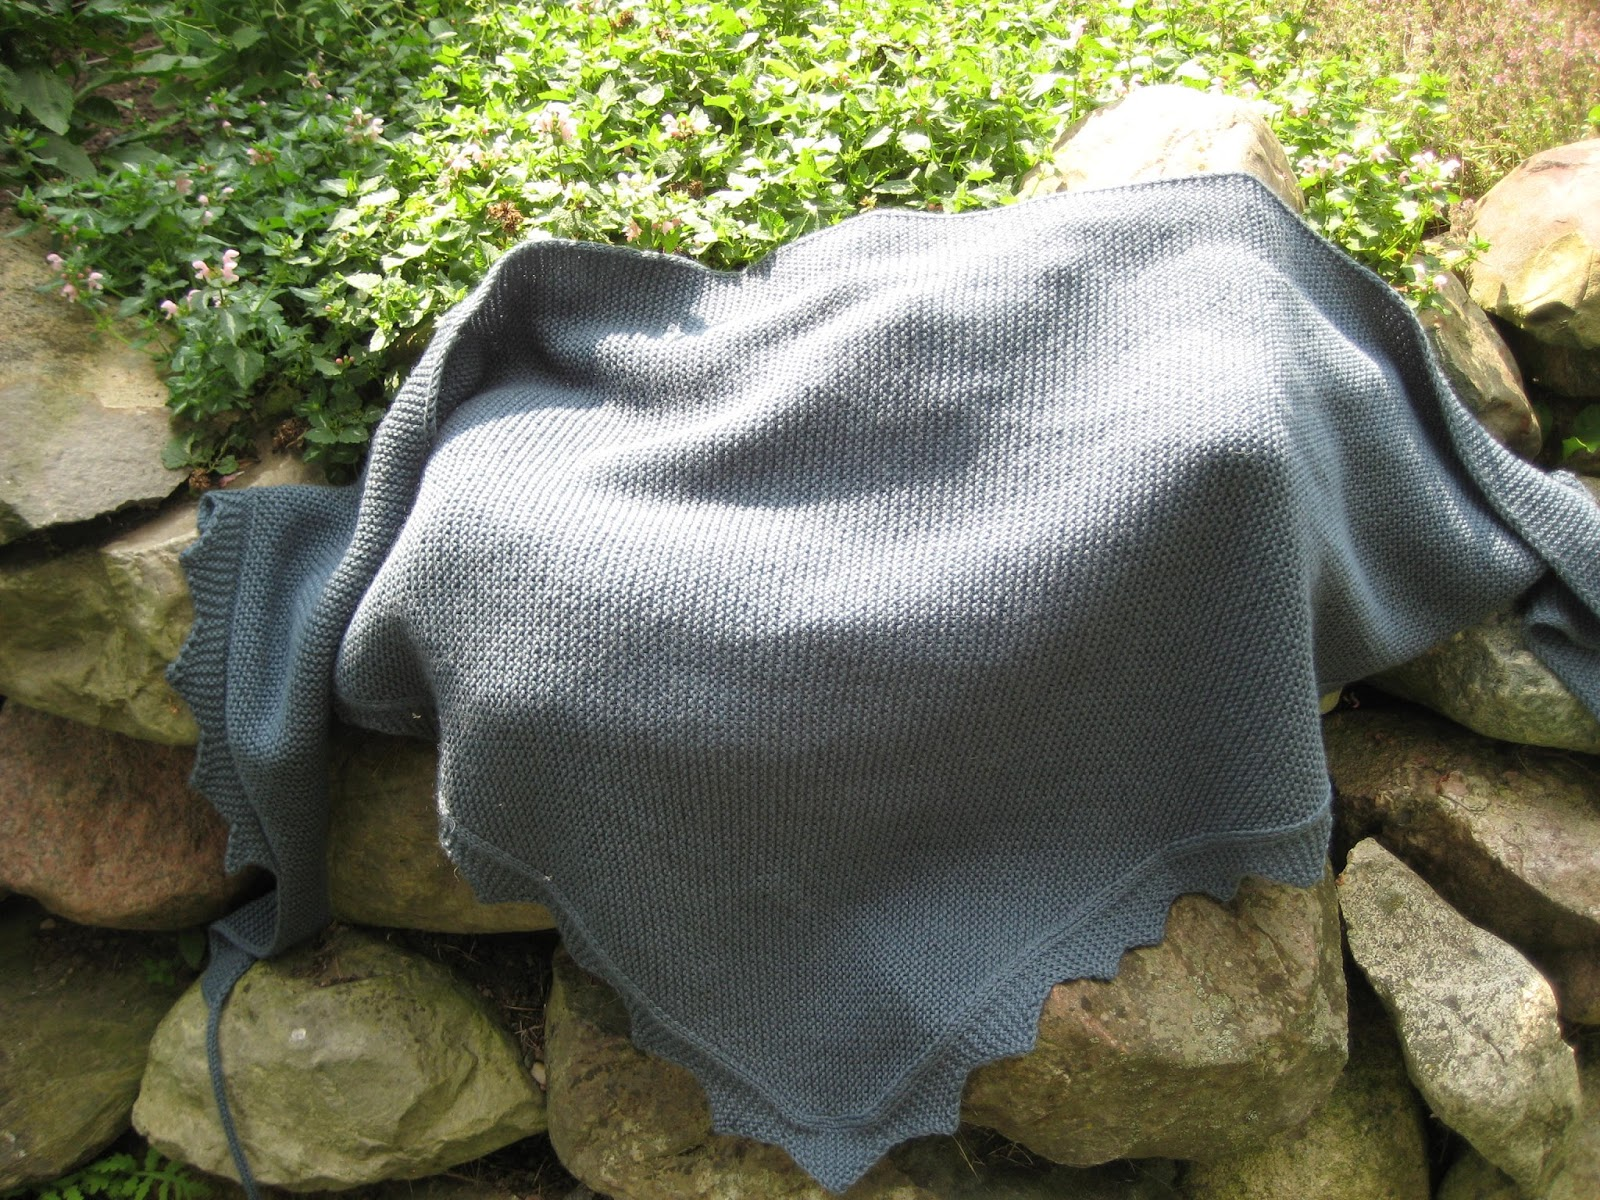 Jane Austen Knitting Patterns : A Sensible Shawl - Jane Austen Knits